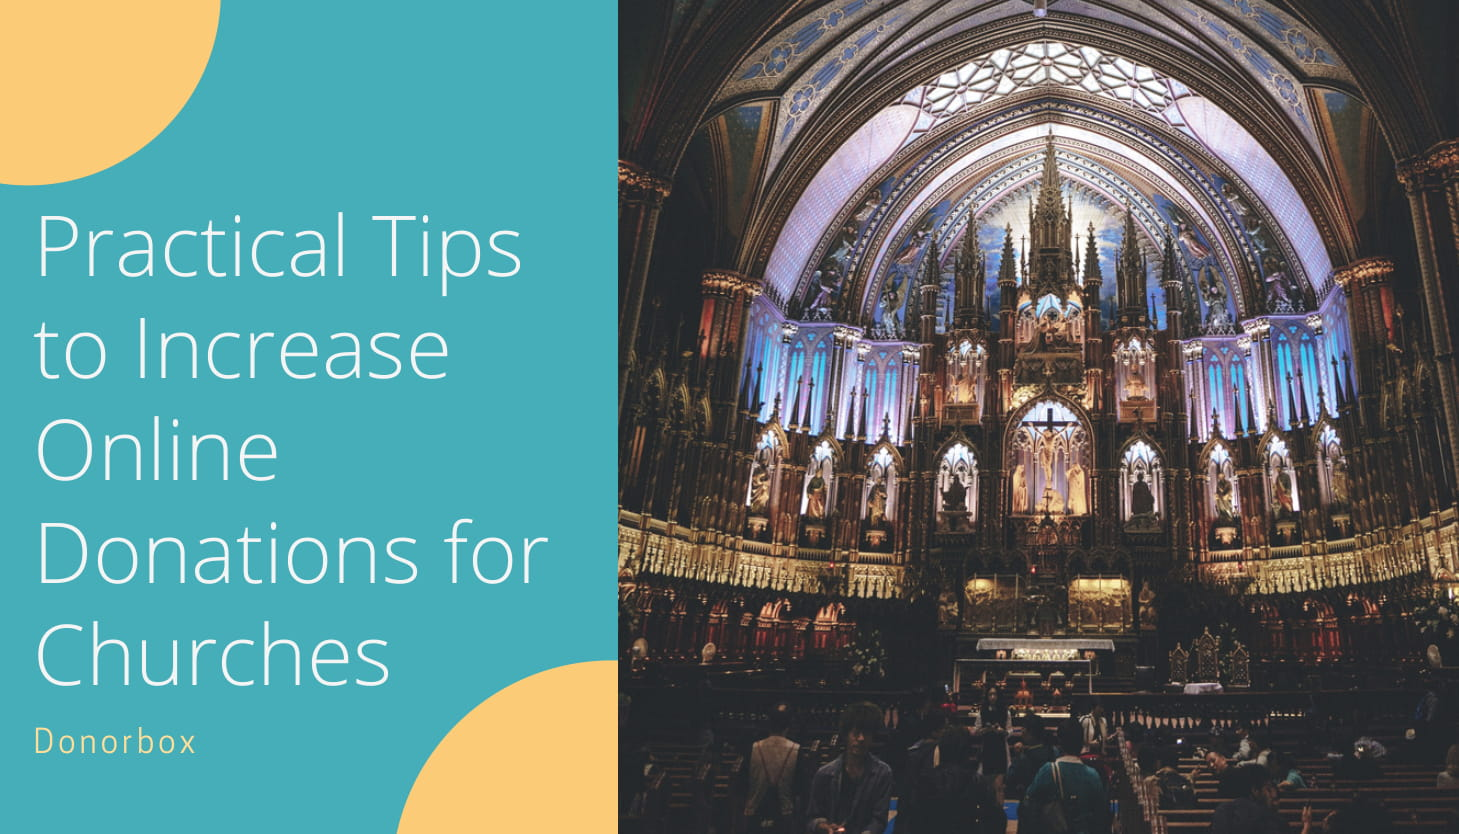 11 Practical Tips to Increase Online Donations for Churches | Donorbox